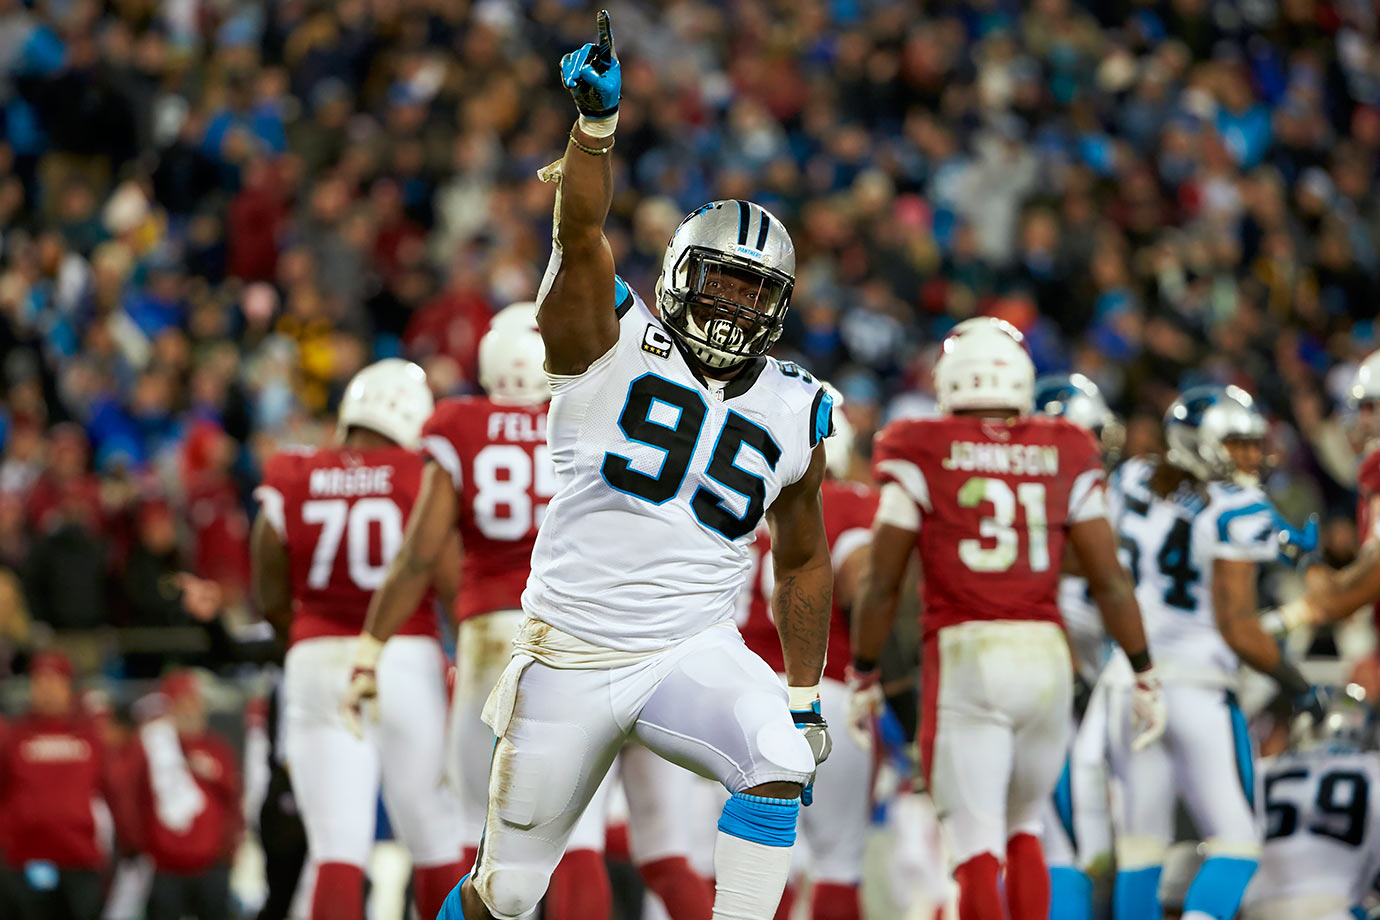 In order to clear cap space, the Panthers cut nine-year veteran defensive end Charles Johnson. He has been a starter on the Panthers defensive line since 2010 and started all nine games he played in this year. Releasing him clears up $11 million in cap space for the Panthers in 2016.